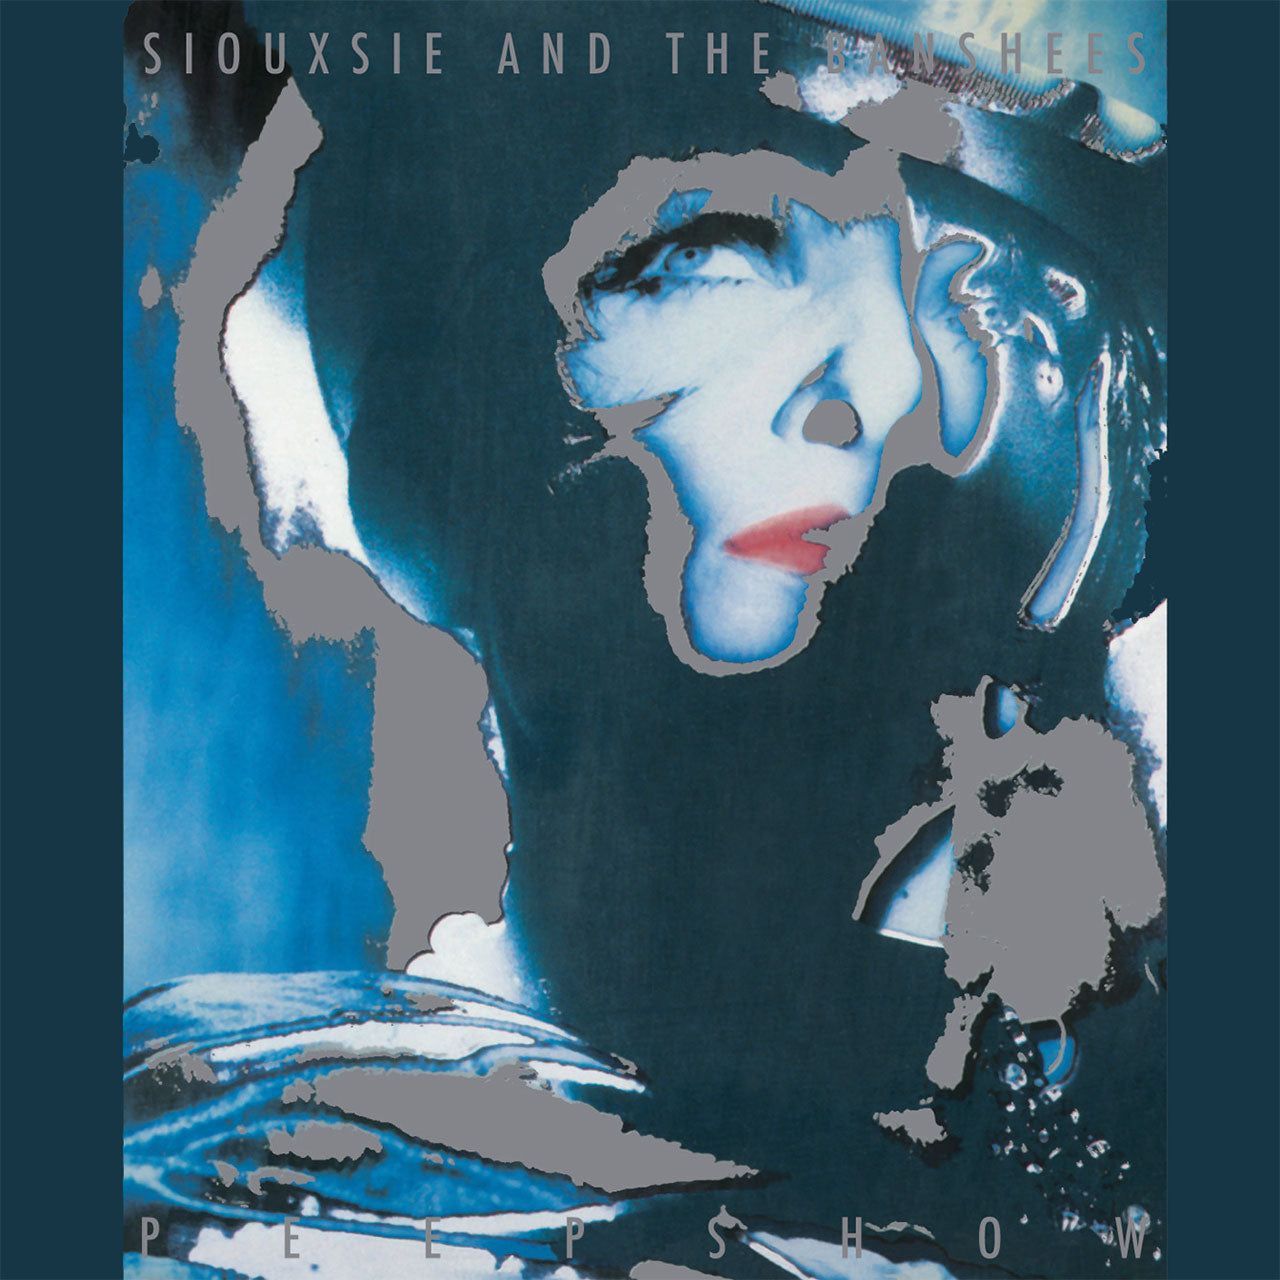 Siouxsie and the Banshees - Peepshow (CD)